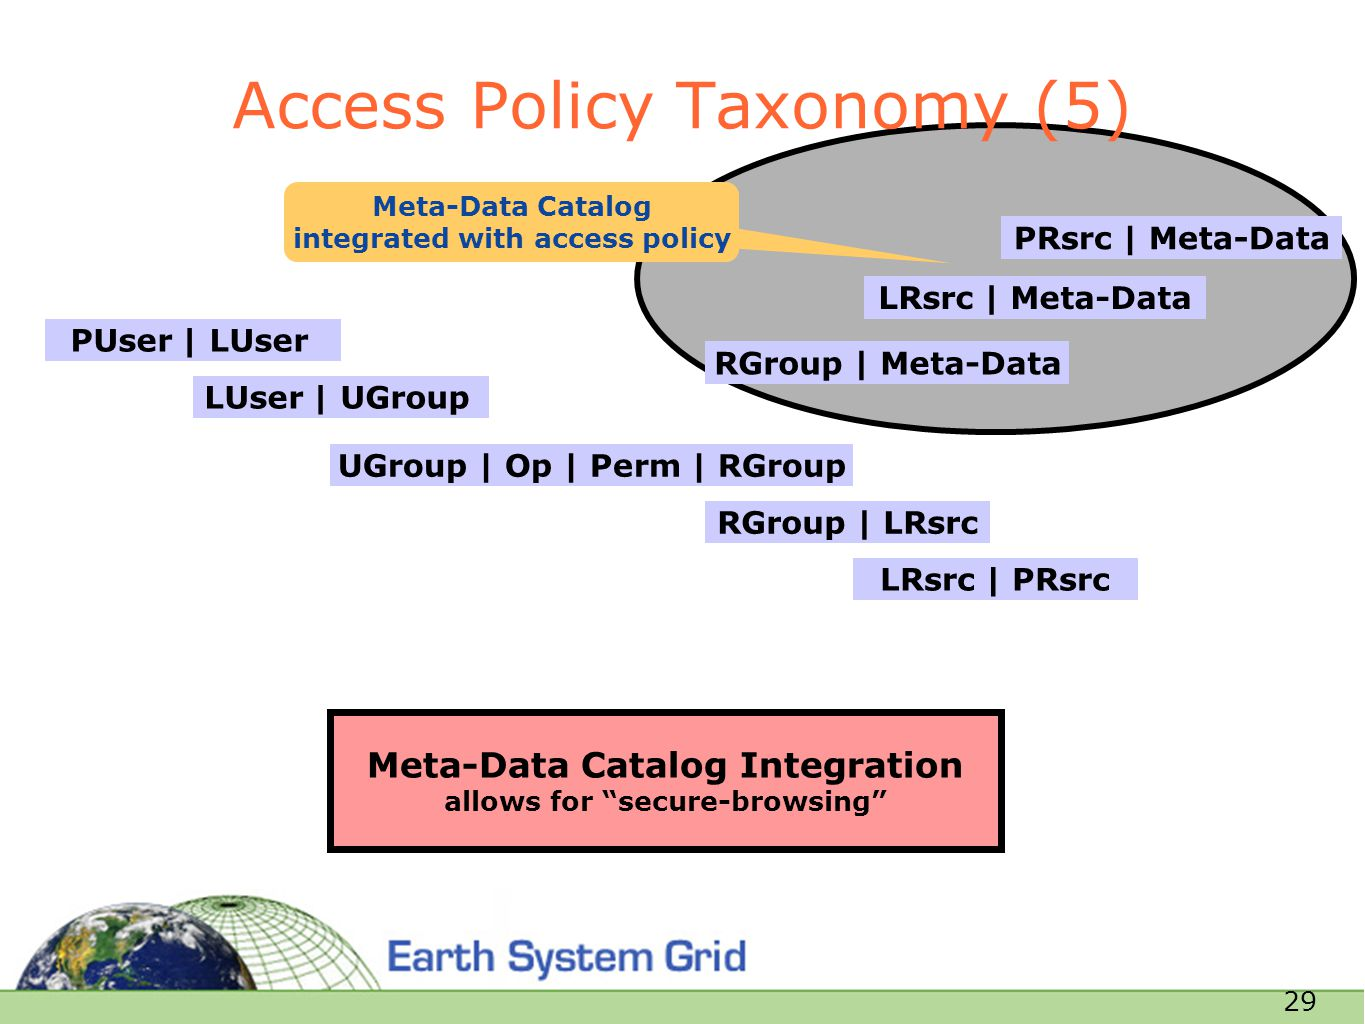 29 Access Policy Taxonomy (5) Meta-Data Catalog Integration allows for secure-browsing Meta-Data Catalog integrated with access policy UGroup | Op | Perm | RGroup RGroup | LRsrc LUser | UGroup PUser | LUser LRsrc | PRsrc RGroup | Meta-Data LRsrc | Meta-Data PRsrc | Meta-Data